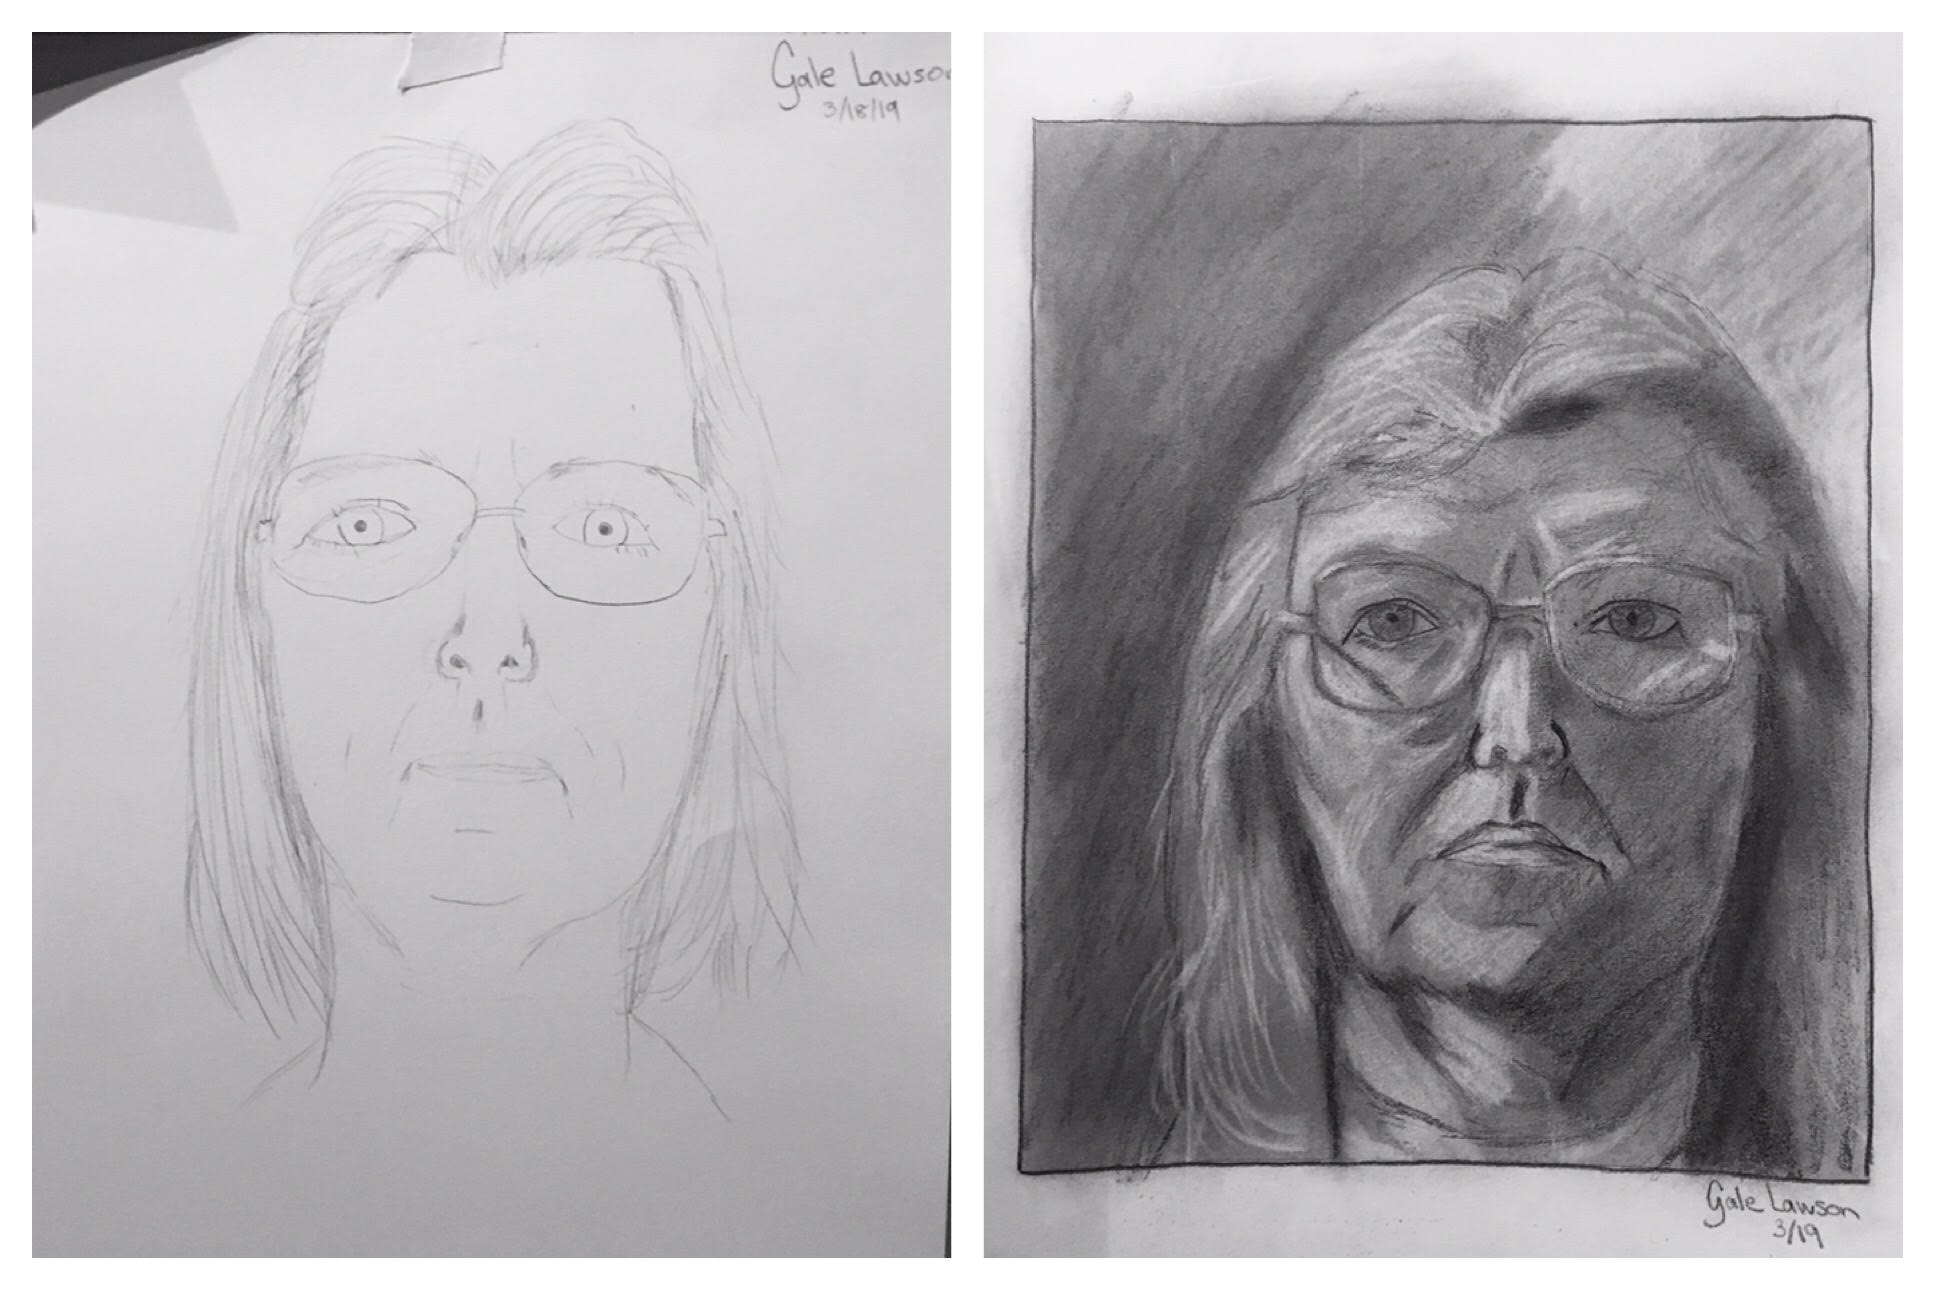 Gayle's Before and After Self-Portraits March 2019